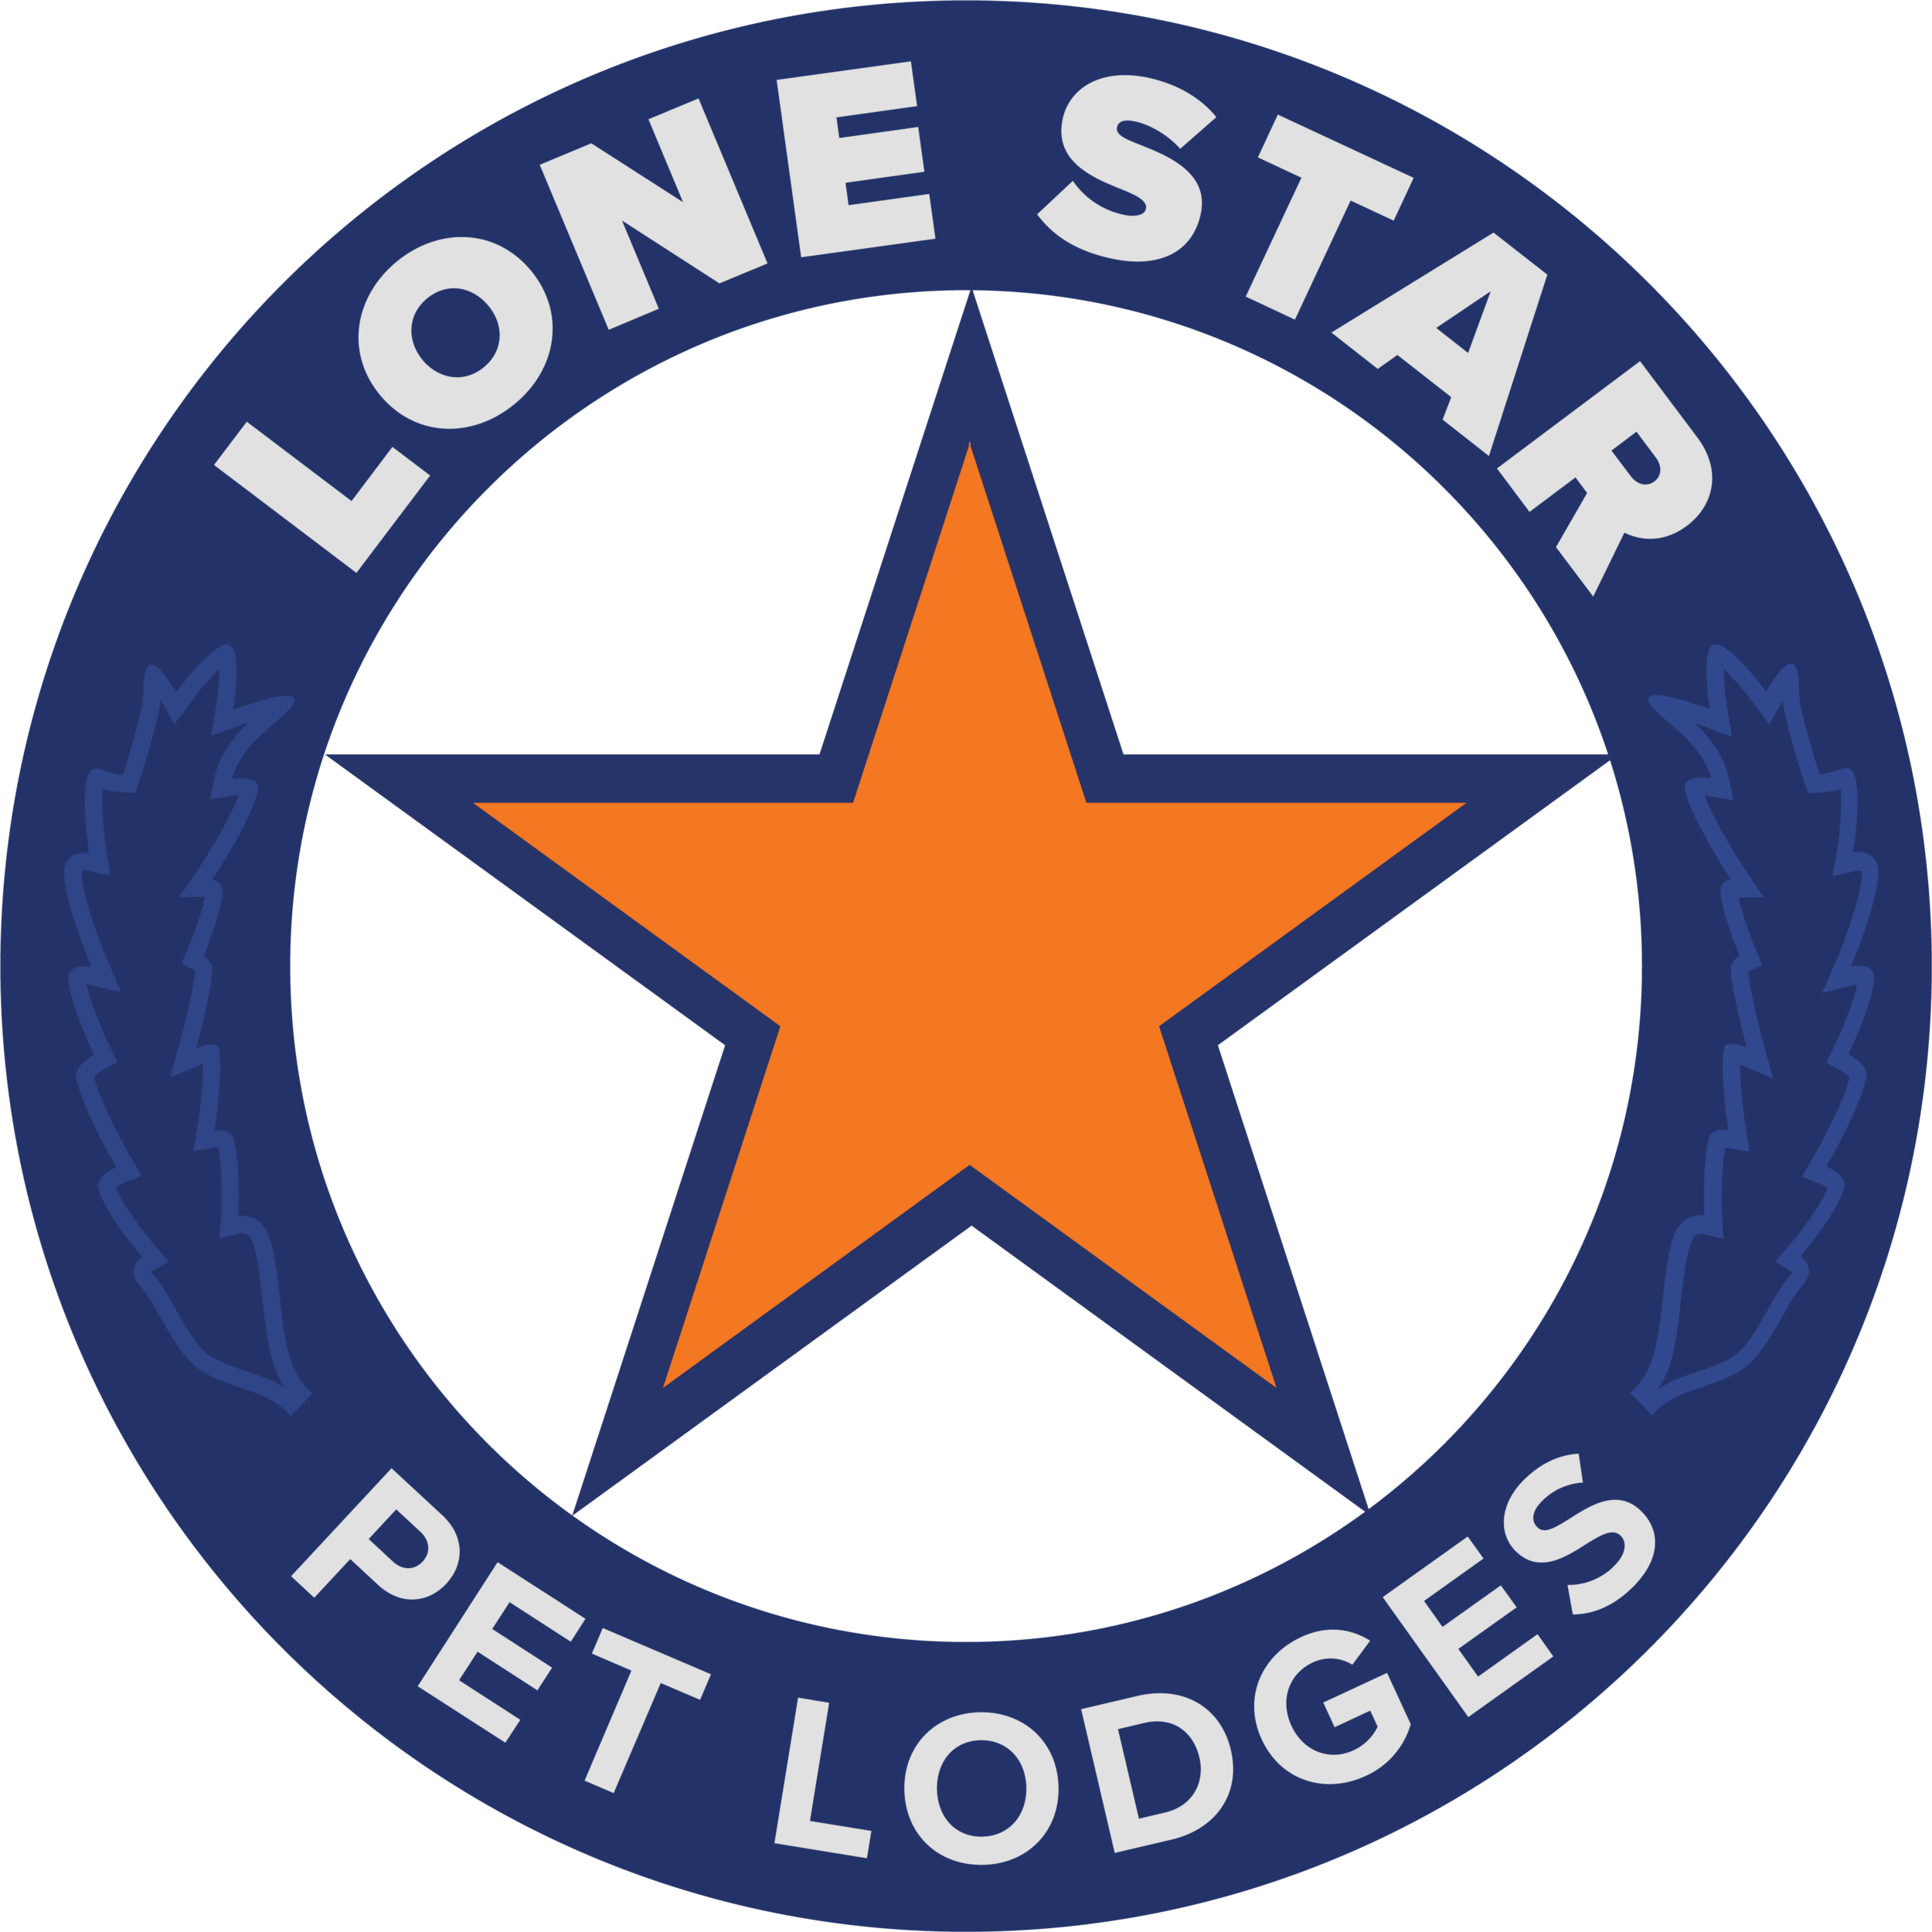 Lone Star Pet Lodges